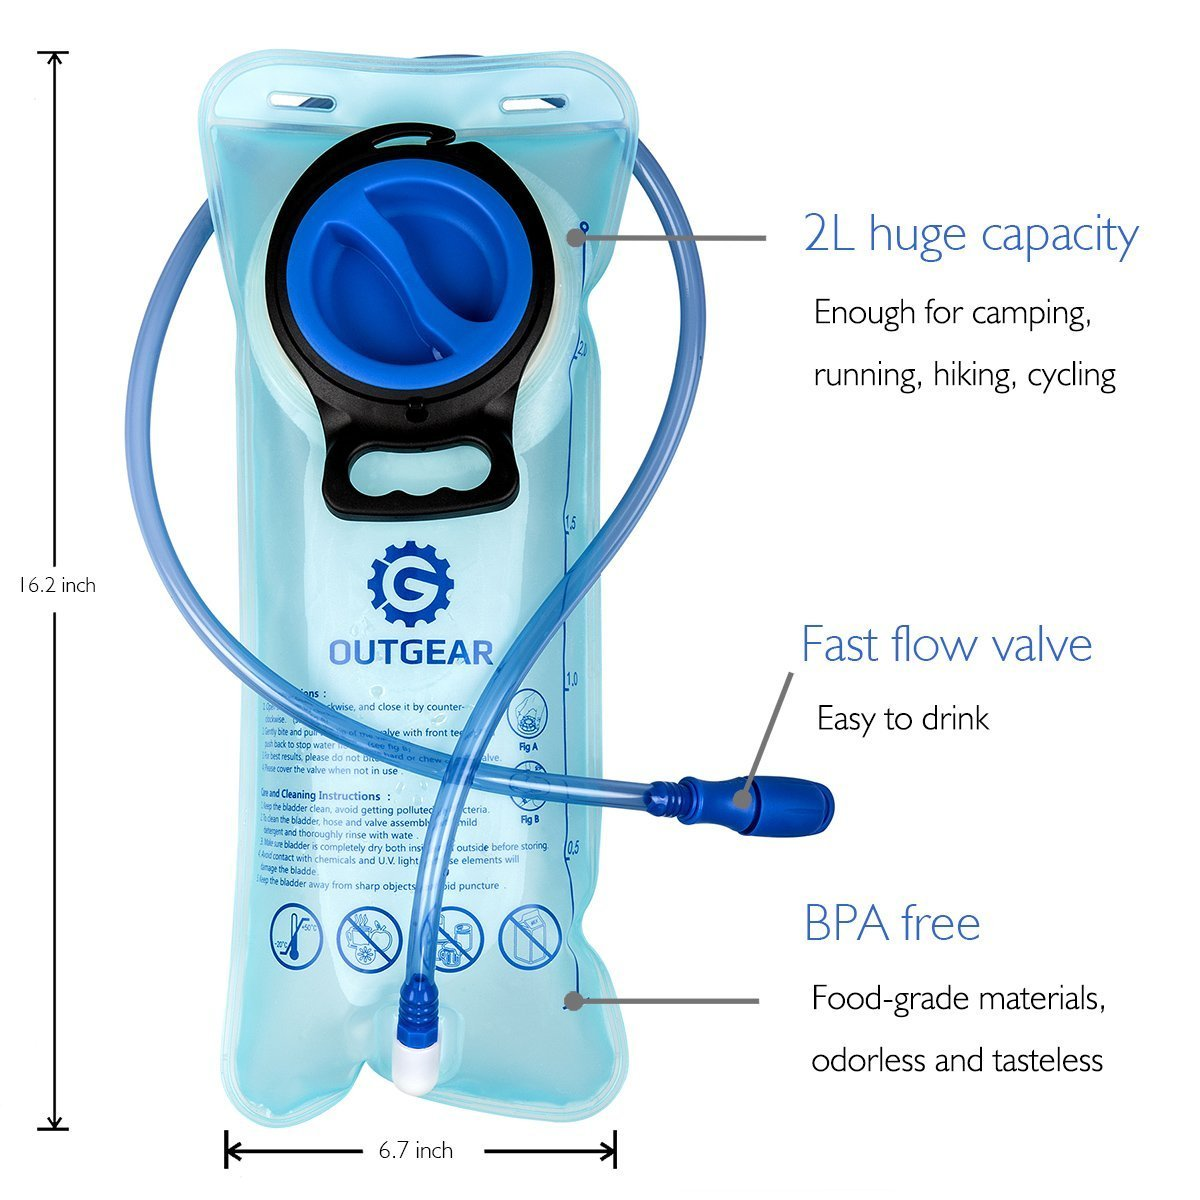 OUTGEAR Hydration Bladder 2L 70OZ Water Reservoir, BPA Free, Leak-Proof, Easy Clean for Bicycling Hiking Camping Hunting Running with Backpack by OUTGEAR (Image #2)